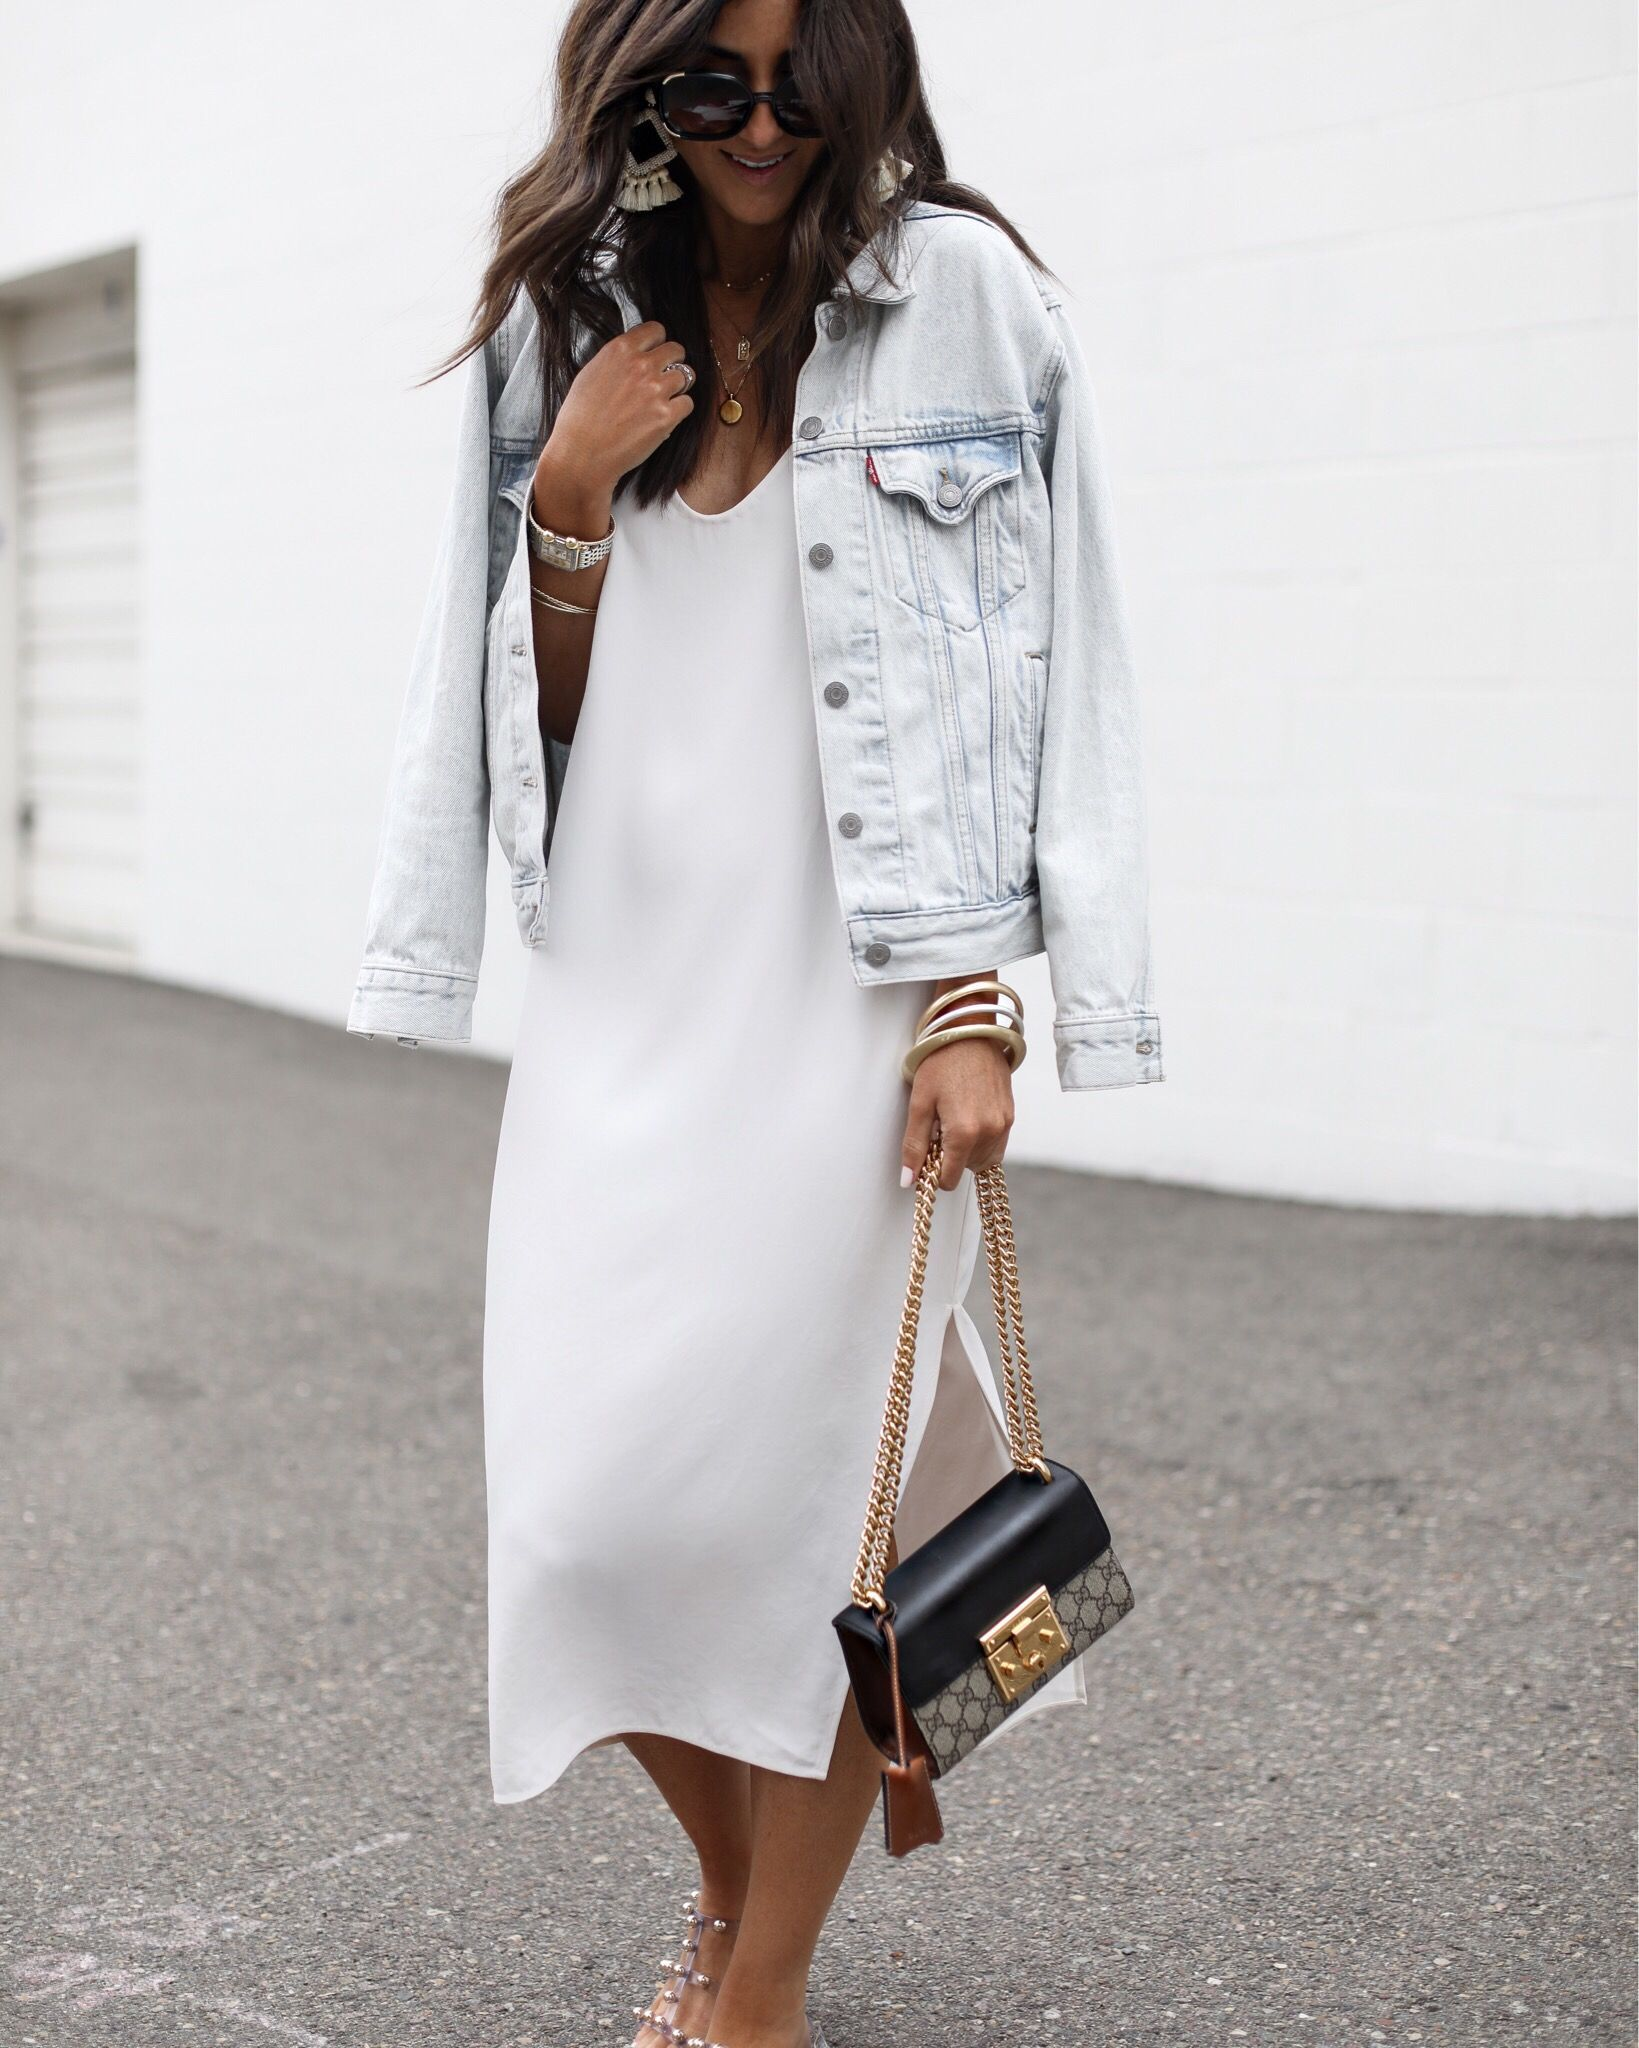 White Dress And Denim Jacket Fashion Black Dress Outfit Casual Casual Dress Outfits [ 2048 x 1639 Pixel ]